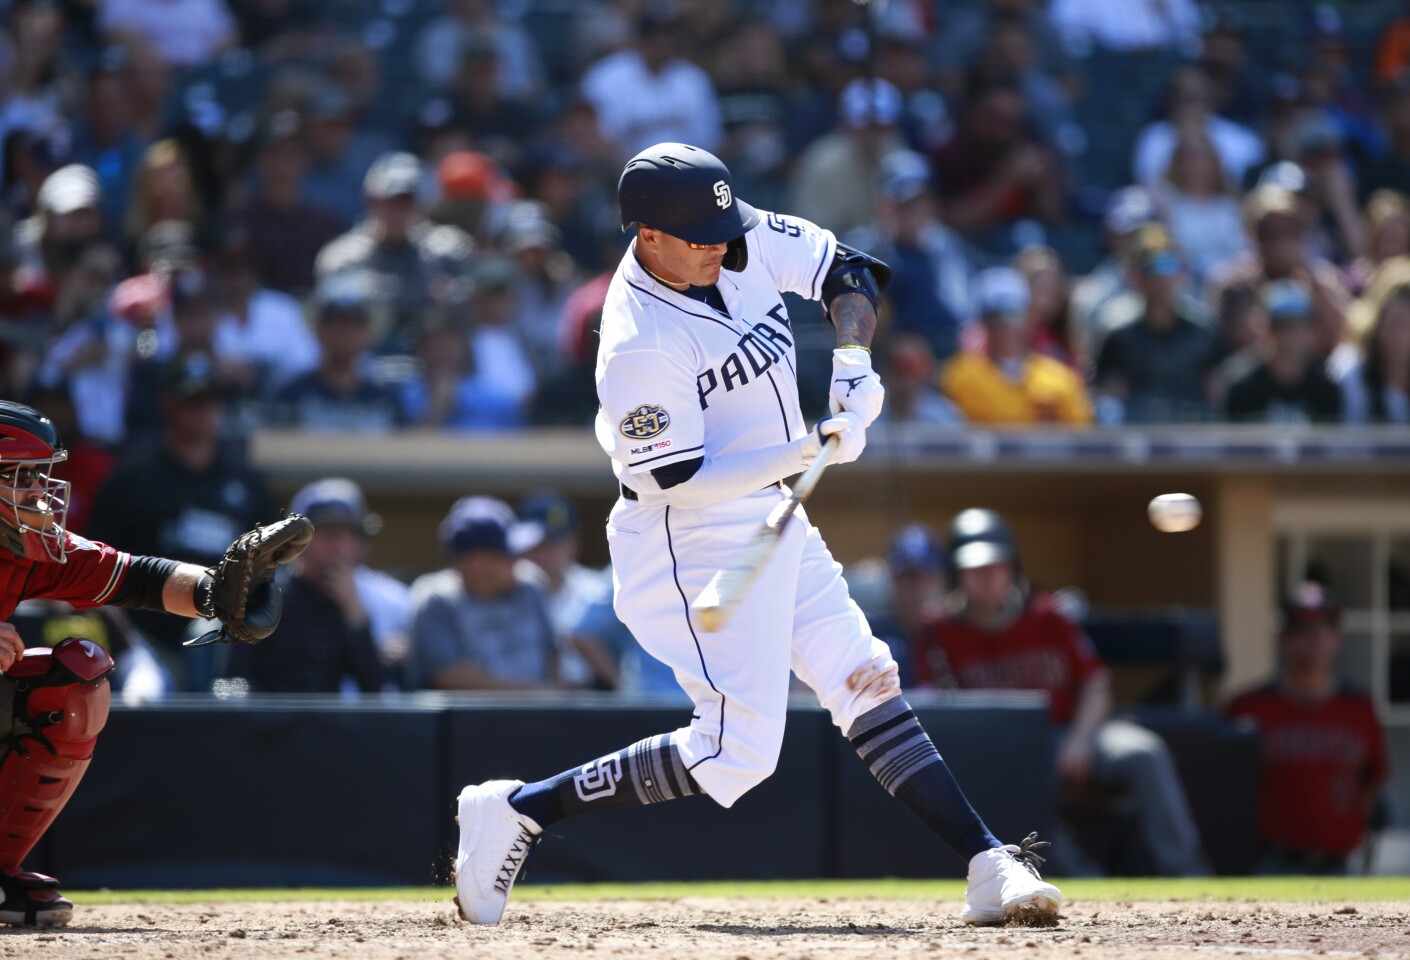 Padres vs Diamondbacks 4/3/19